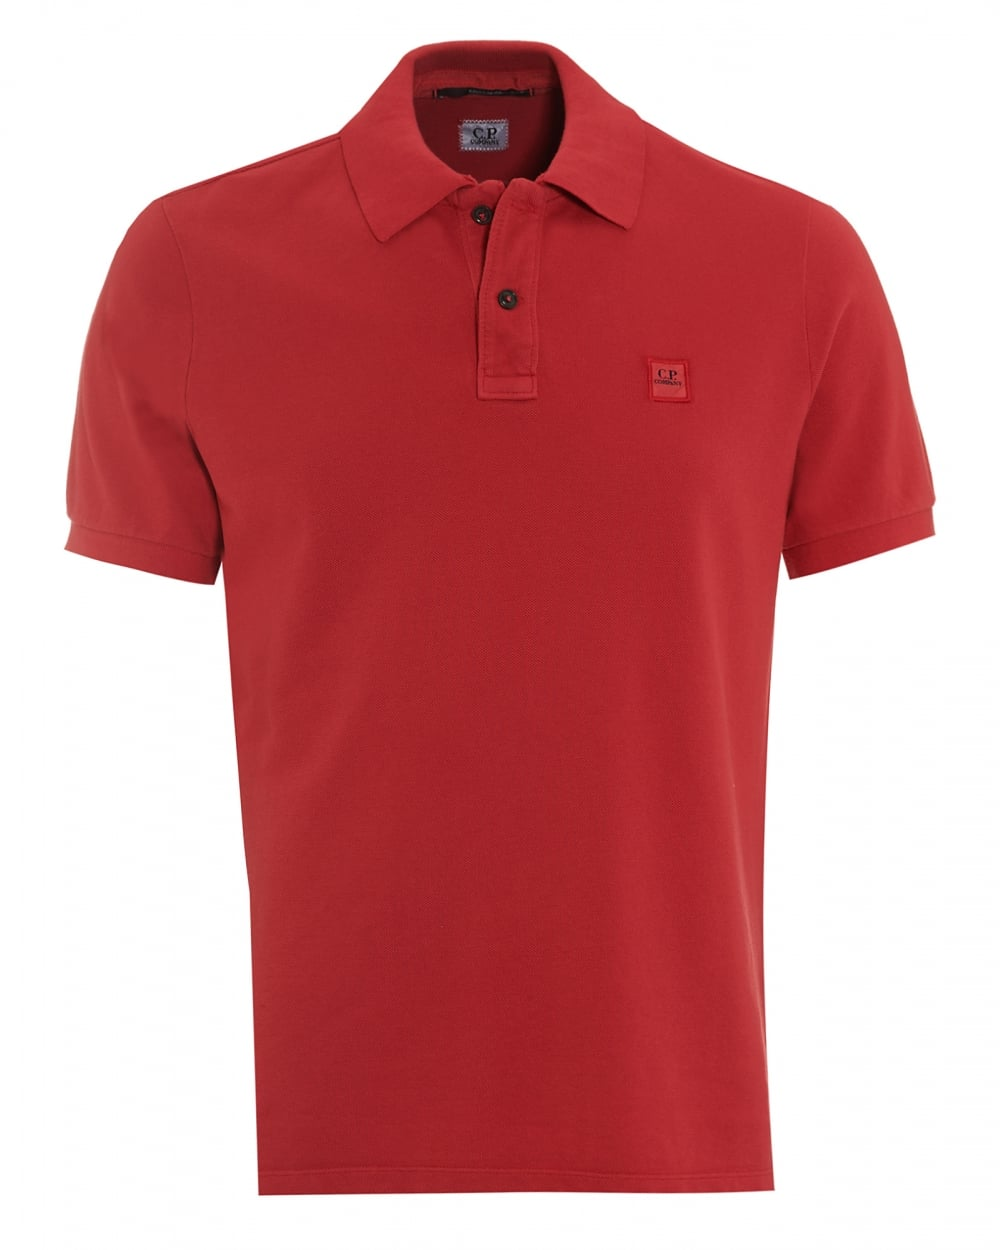 C p company mens classic berry red regular fit logo polo for Corporate polo shirts with logo